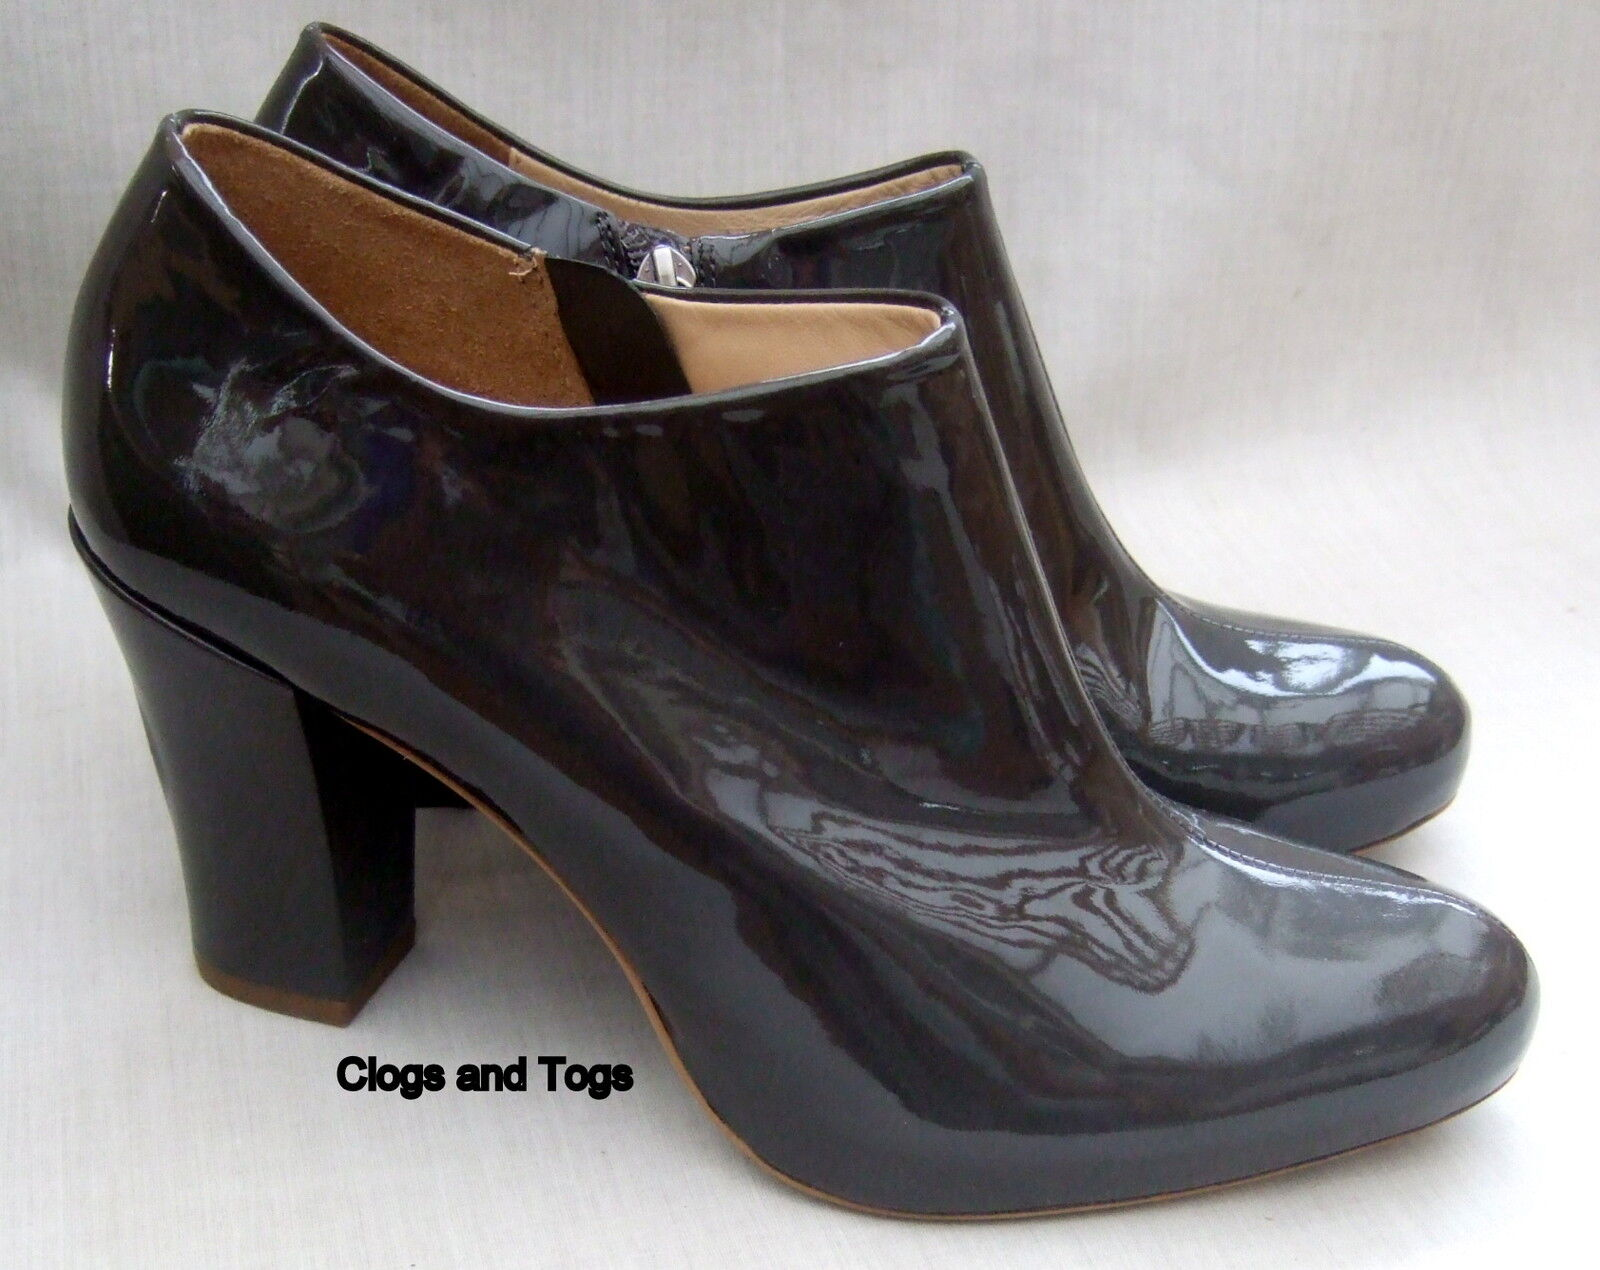 NEW CLARKS ACTIVE AIR LION CUB WOMENS GREY PATENT LEATHER SHOES BOOTS 7 / 41